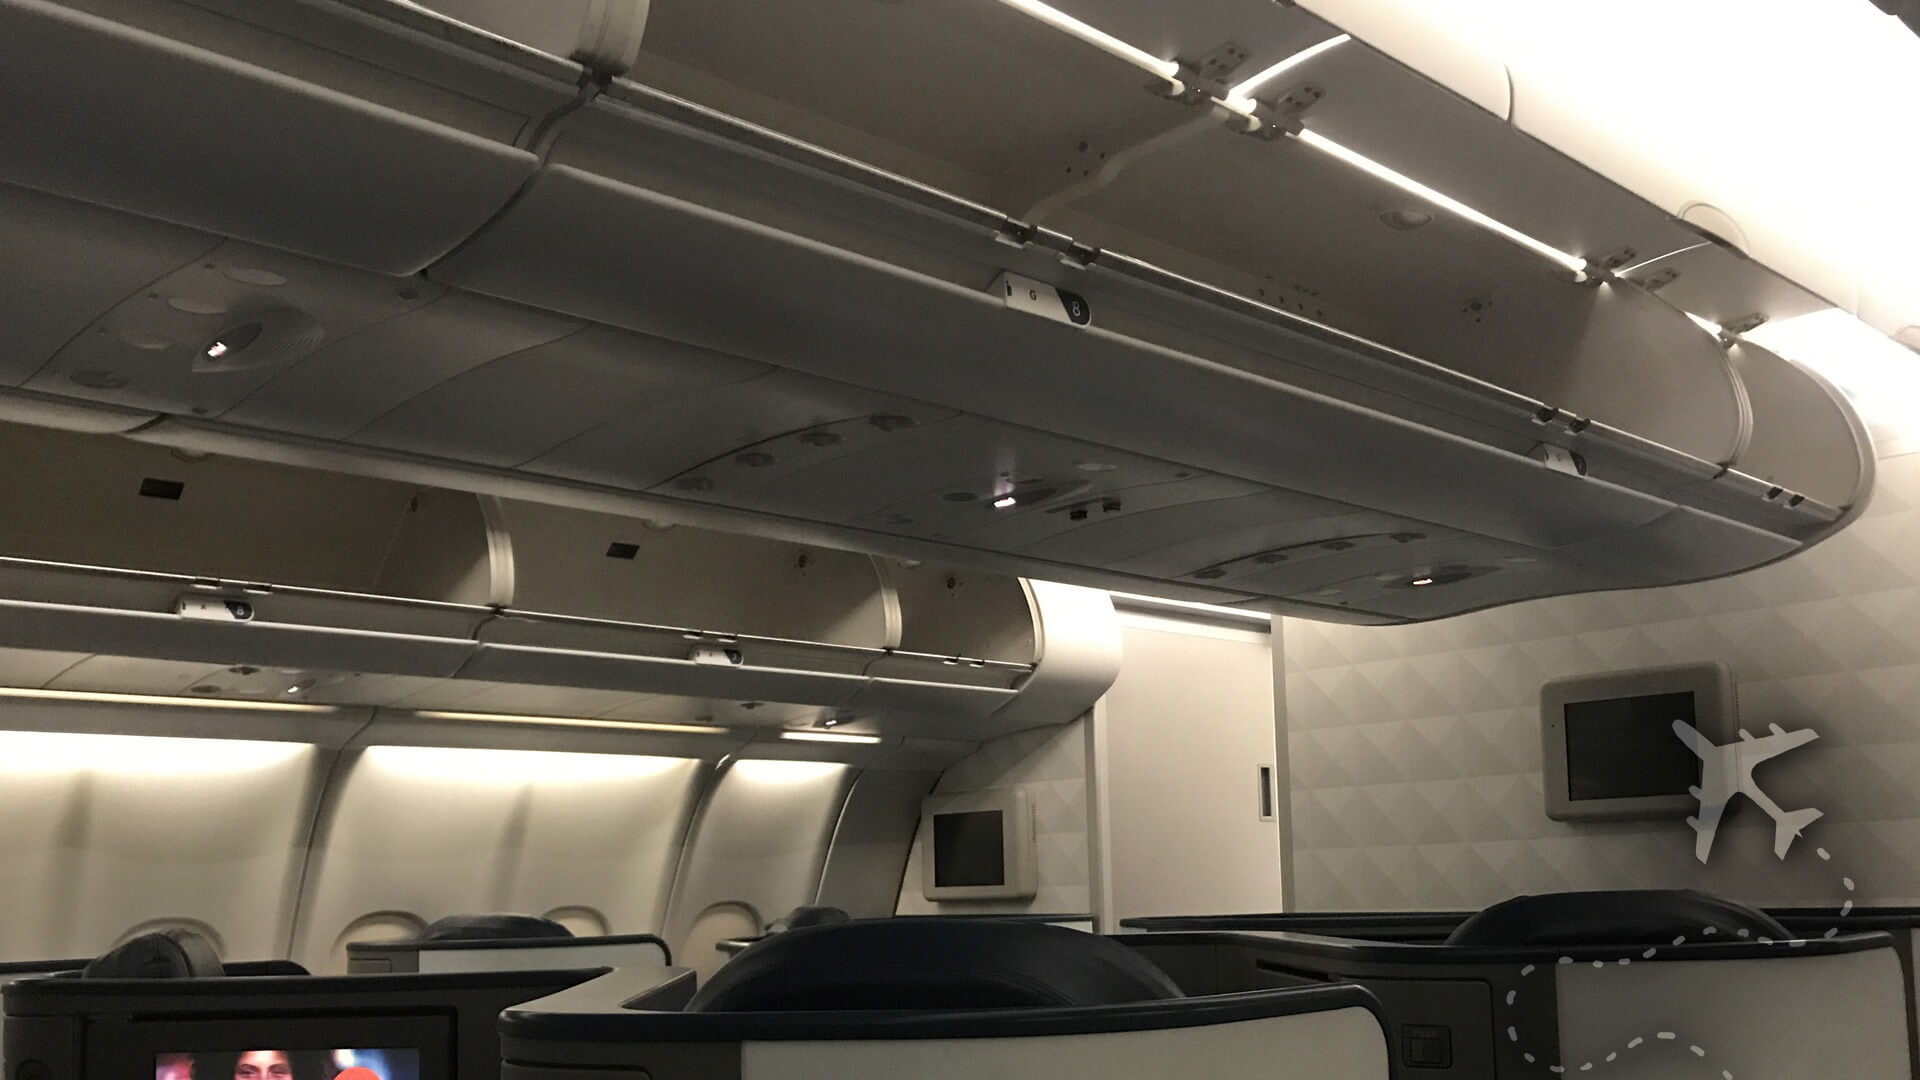 Overhead bin on commercial aircraft